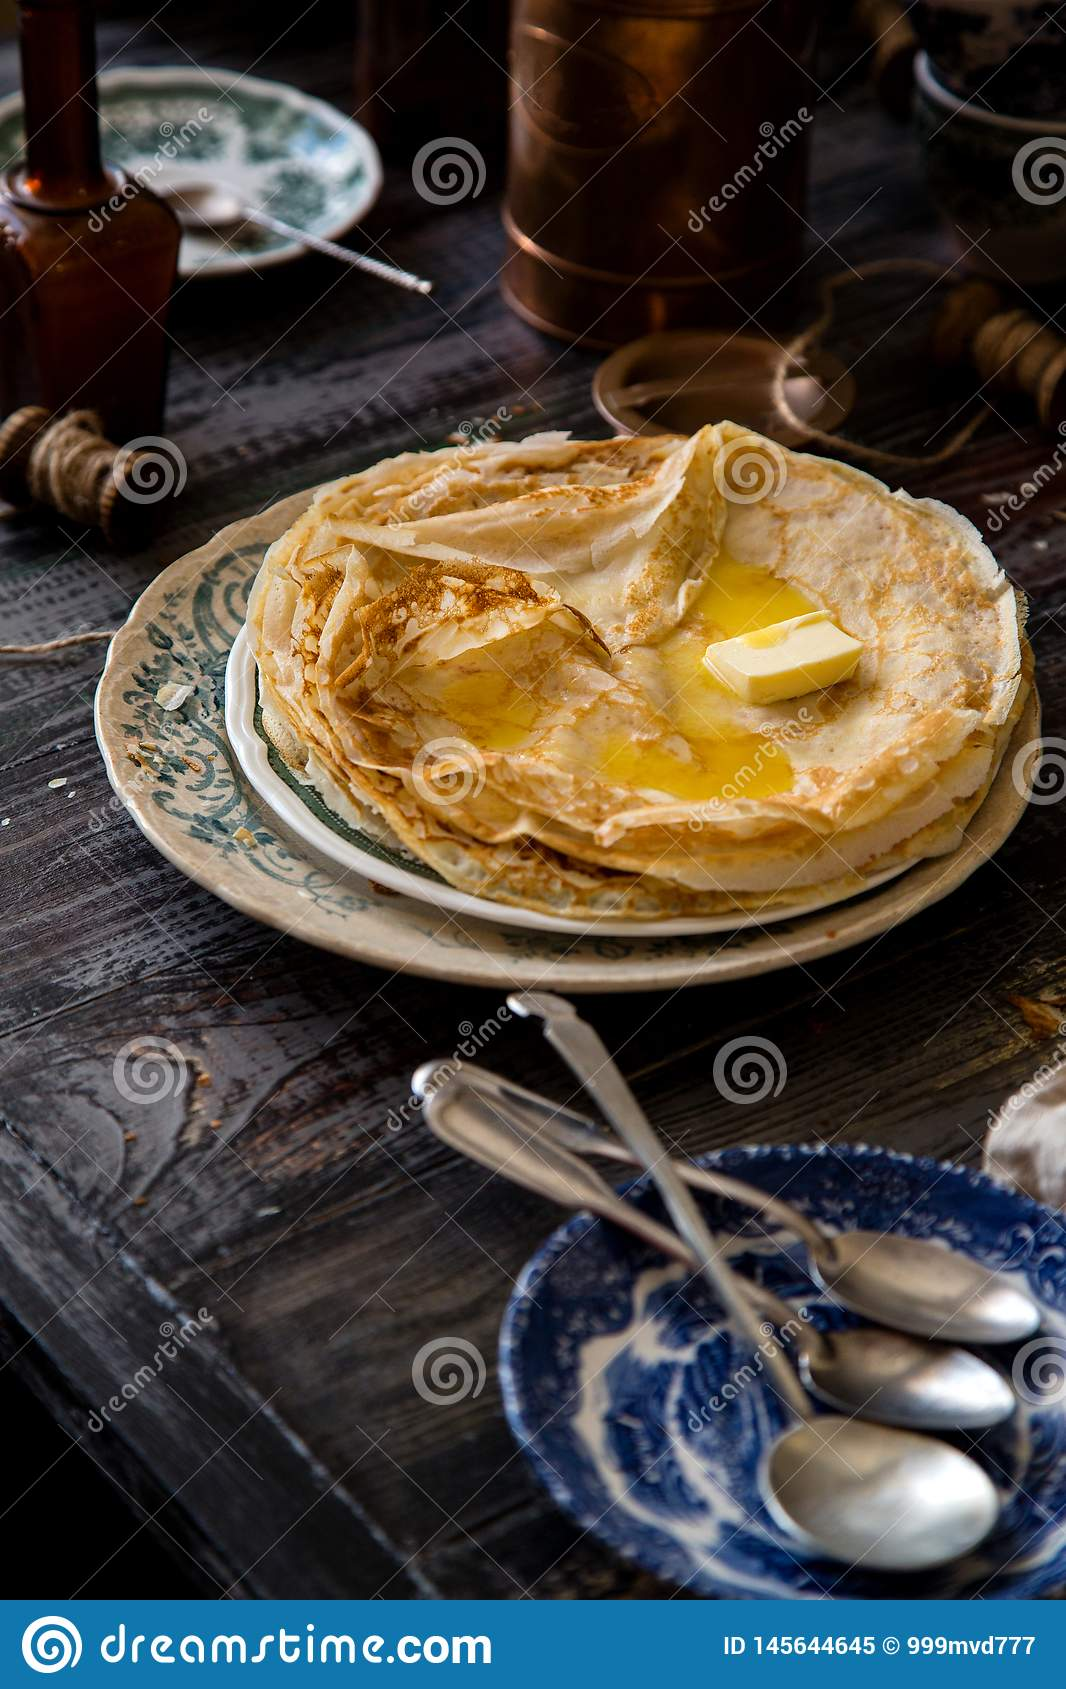 Homemade crepes with melted butter on vintage plate with green ornament stand on rustic grey table